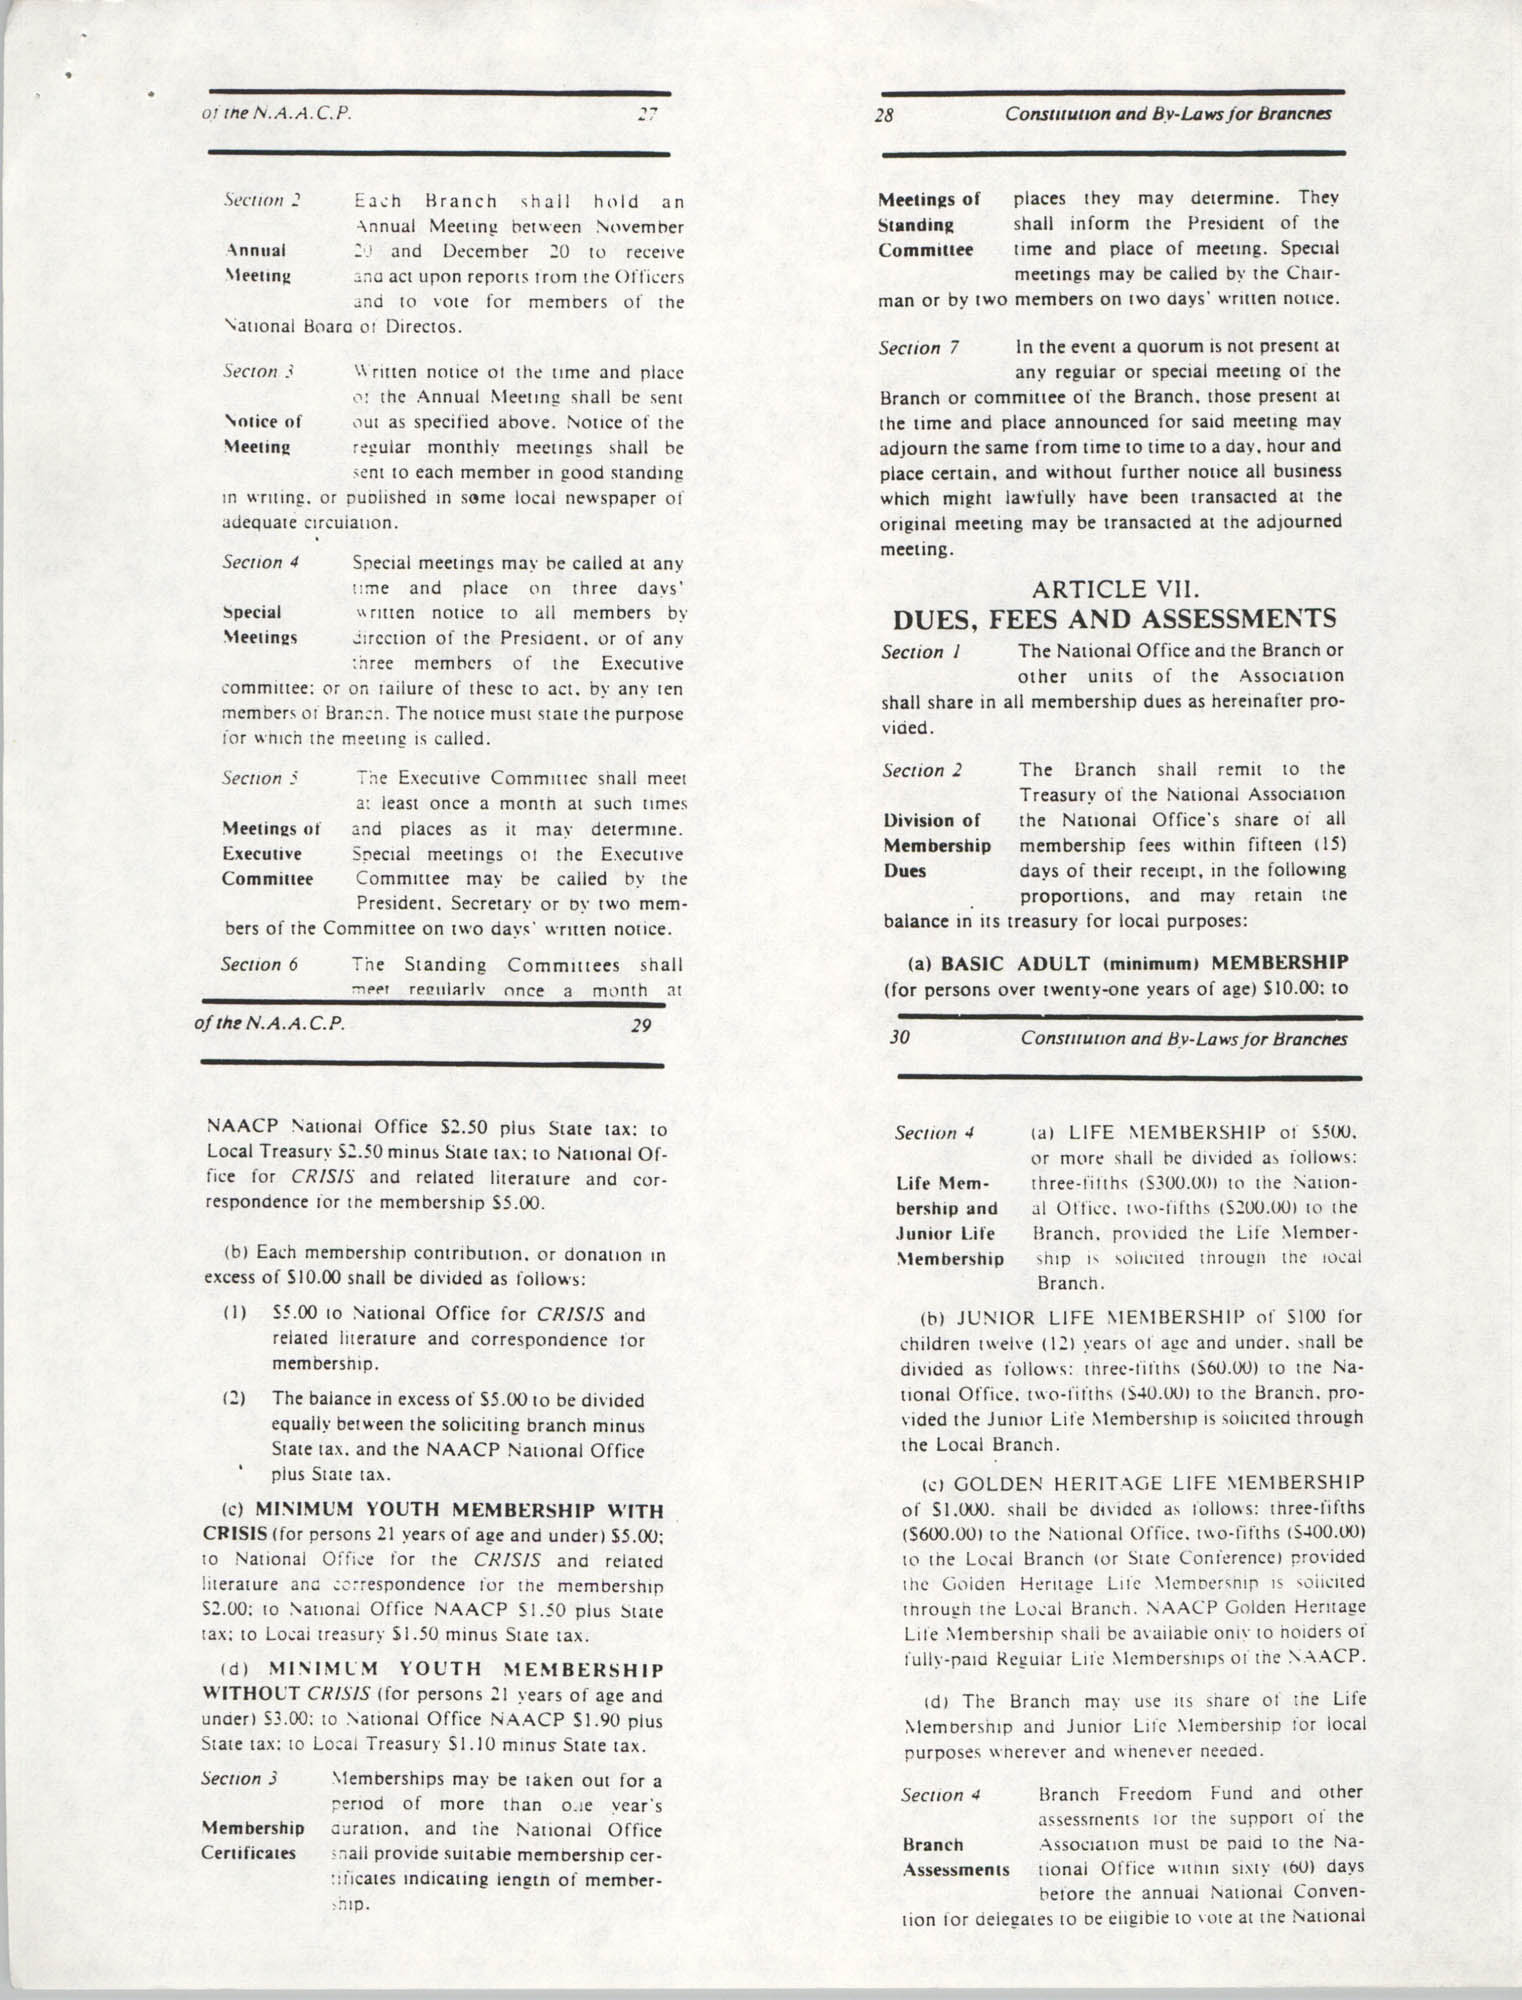 Constitution and By-Laws for Branches of the NAACP, May 1988, Pages 27-30